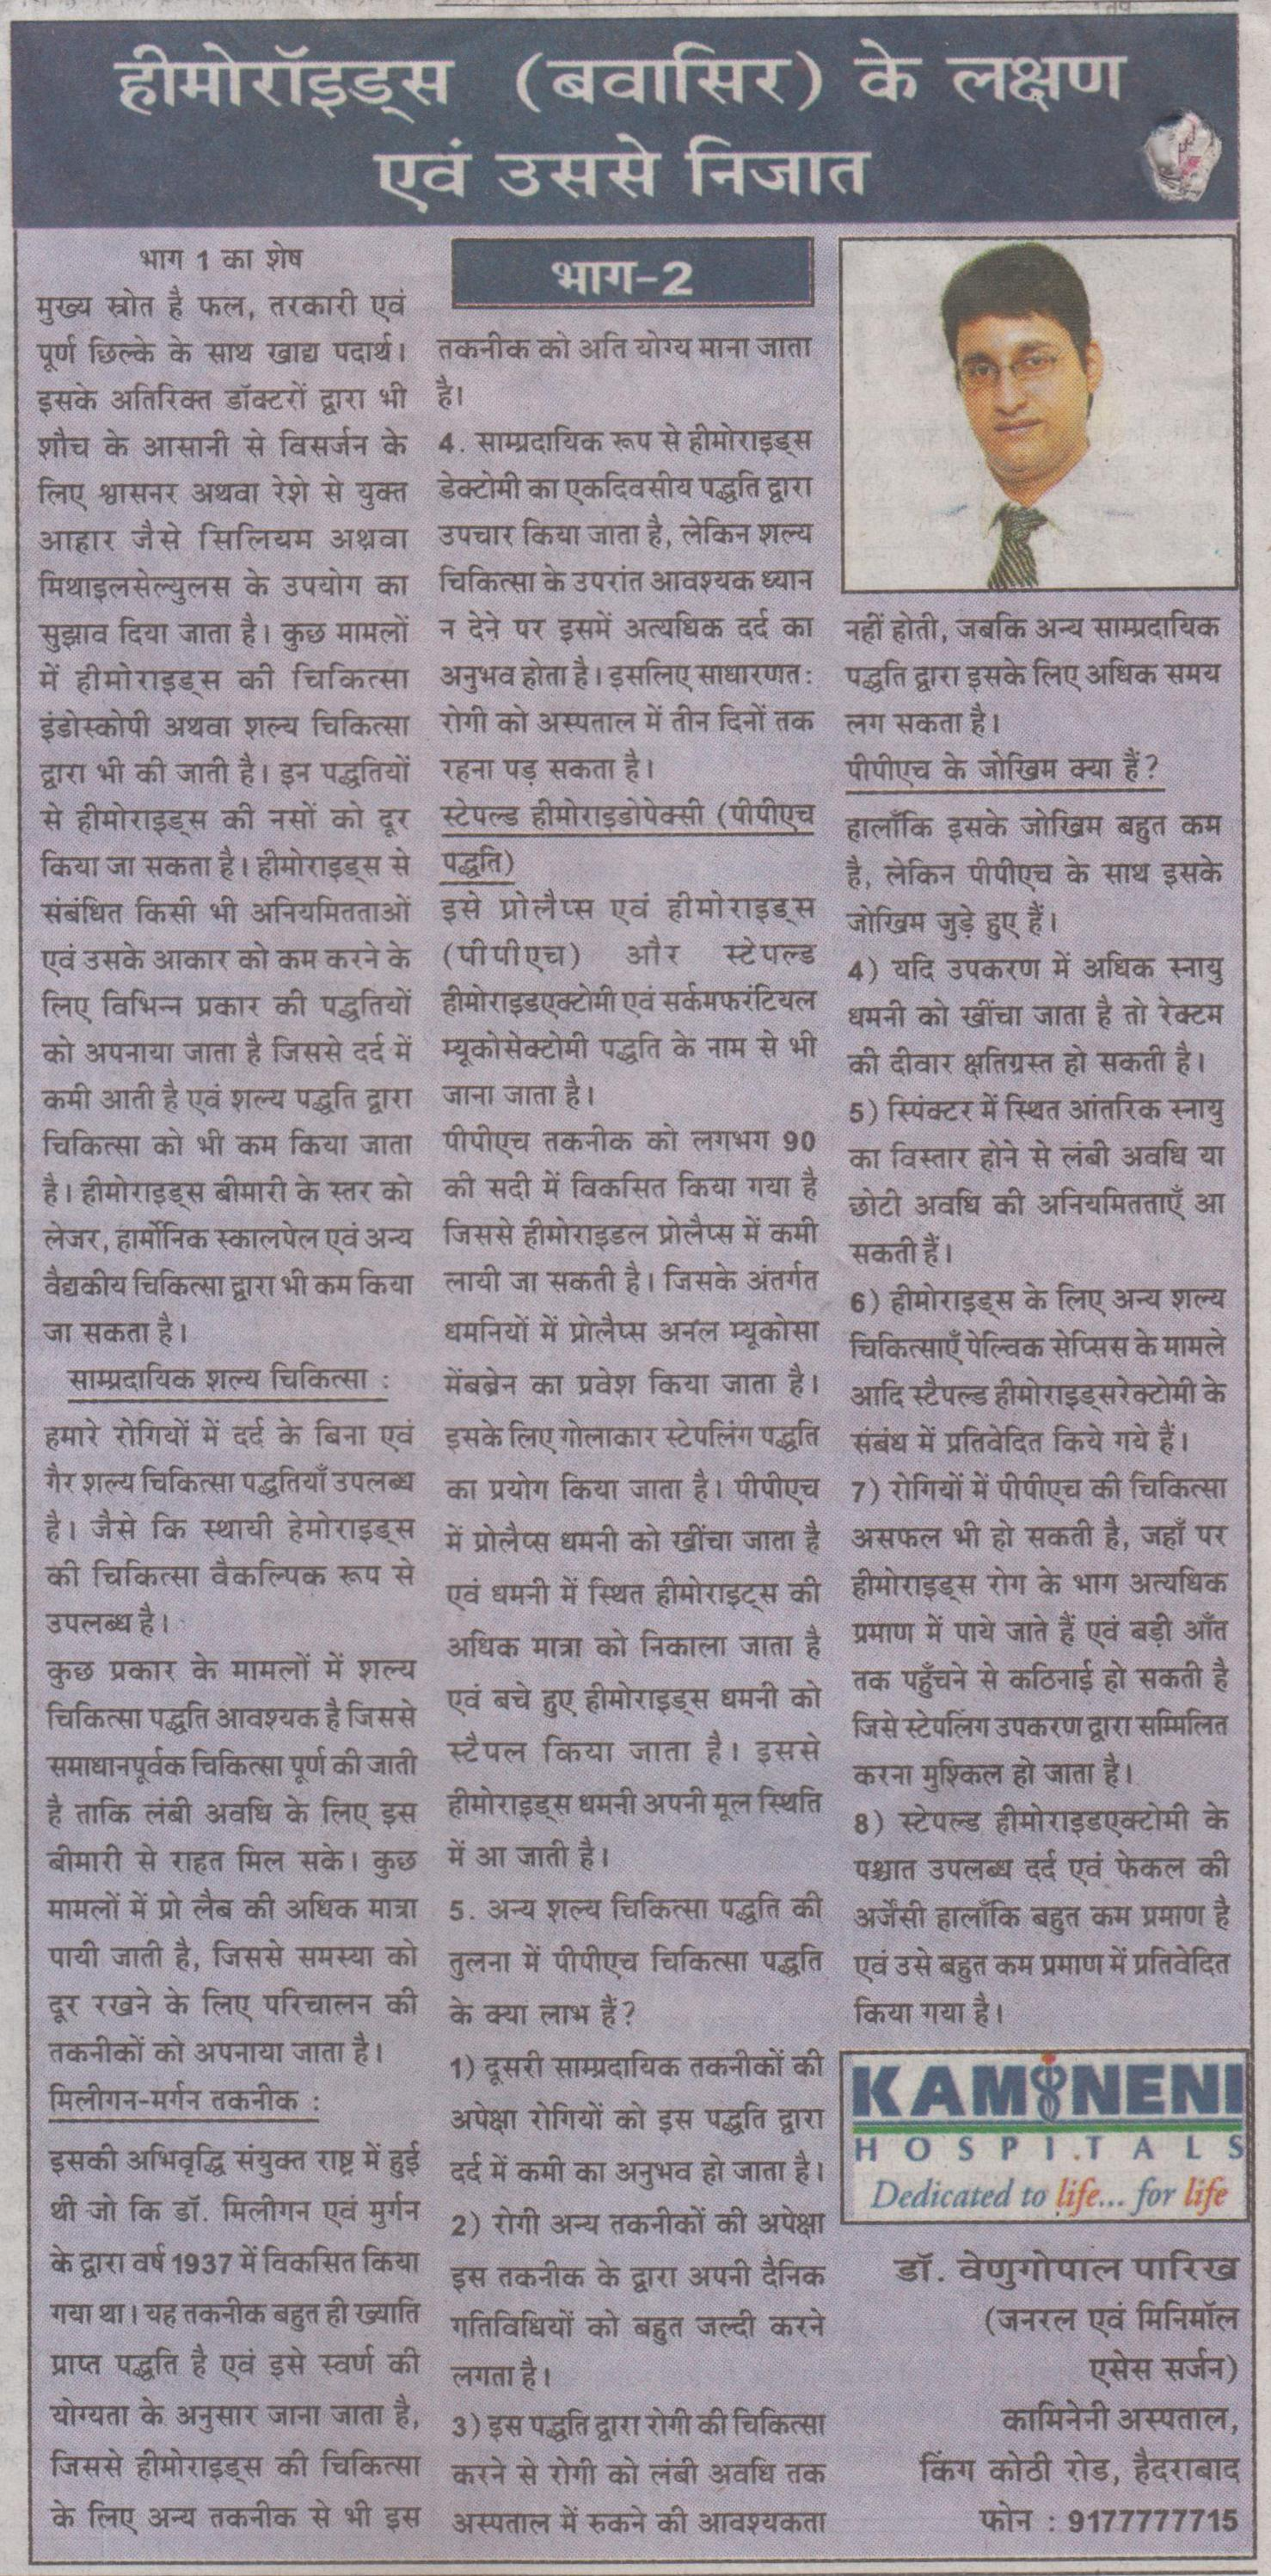 Hemorrhoid symptoms and treatment - Explained by Dr V Pareek in Hindi Newspaper